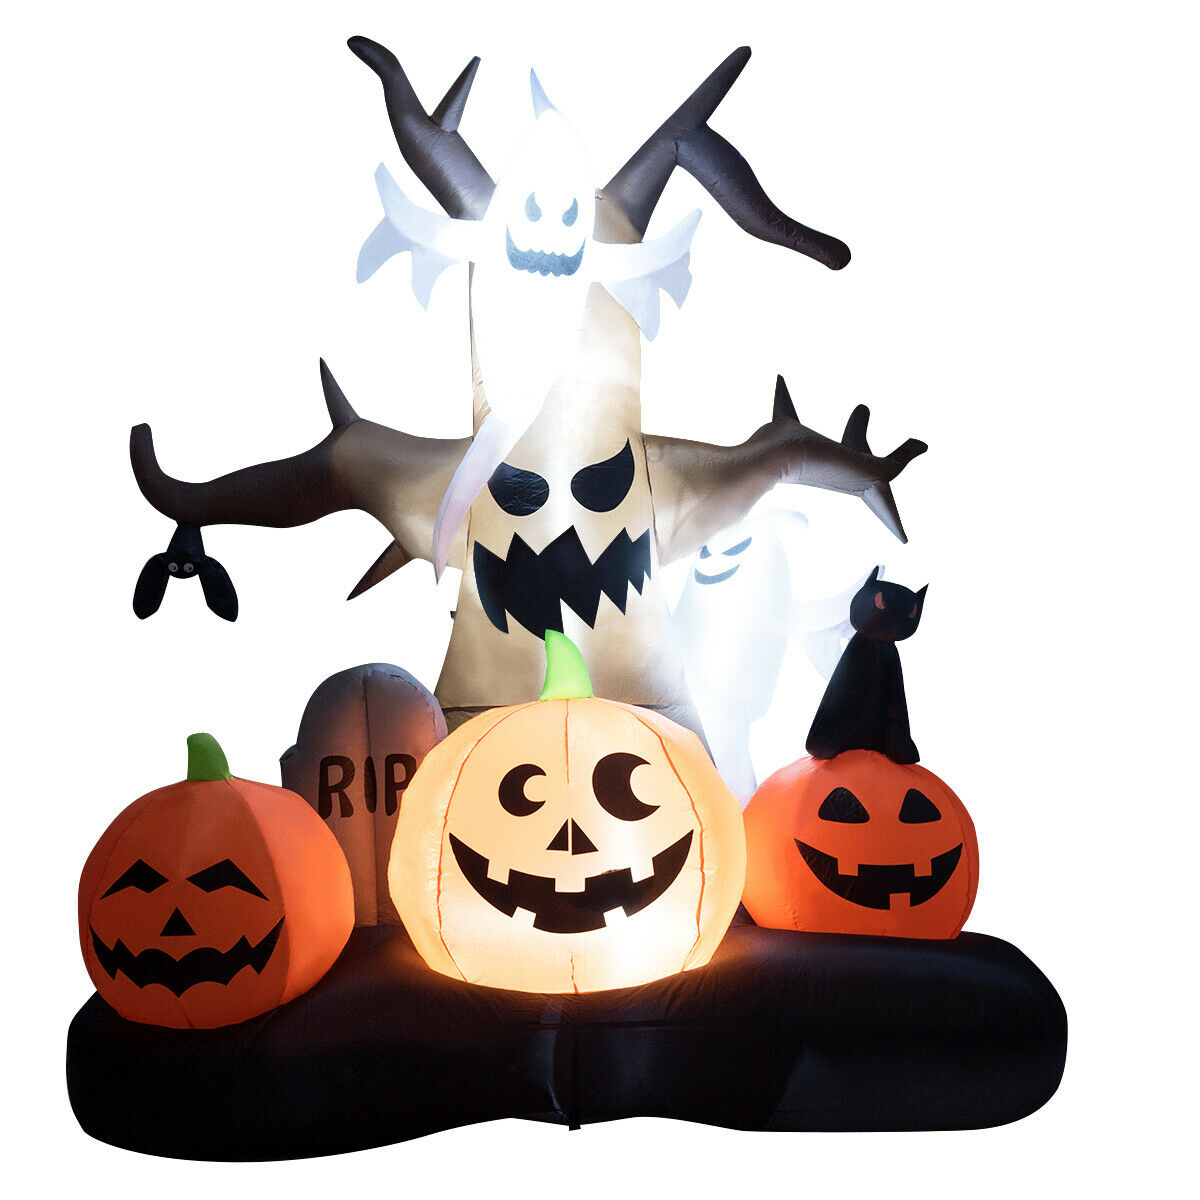 10' Inflatable Dead Tree with Ghost and Pumpkins